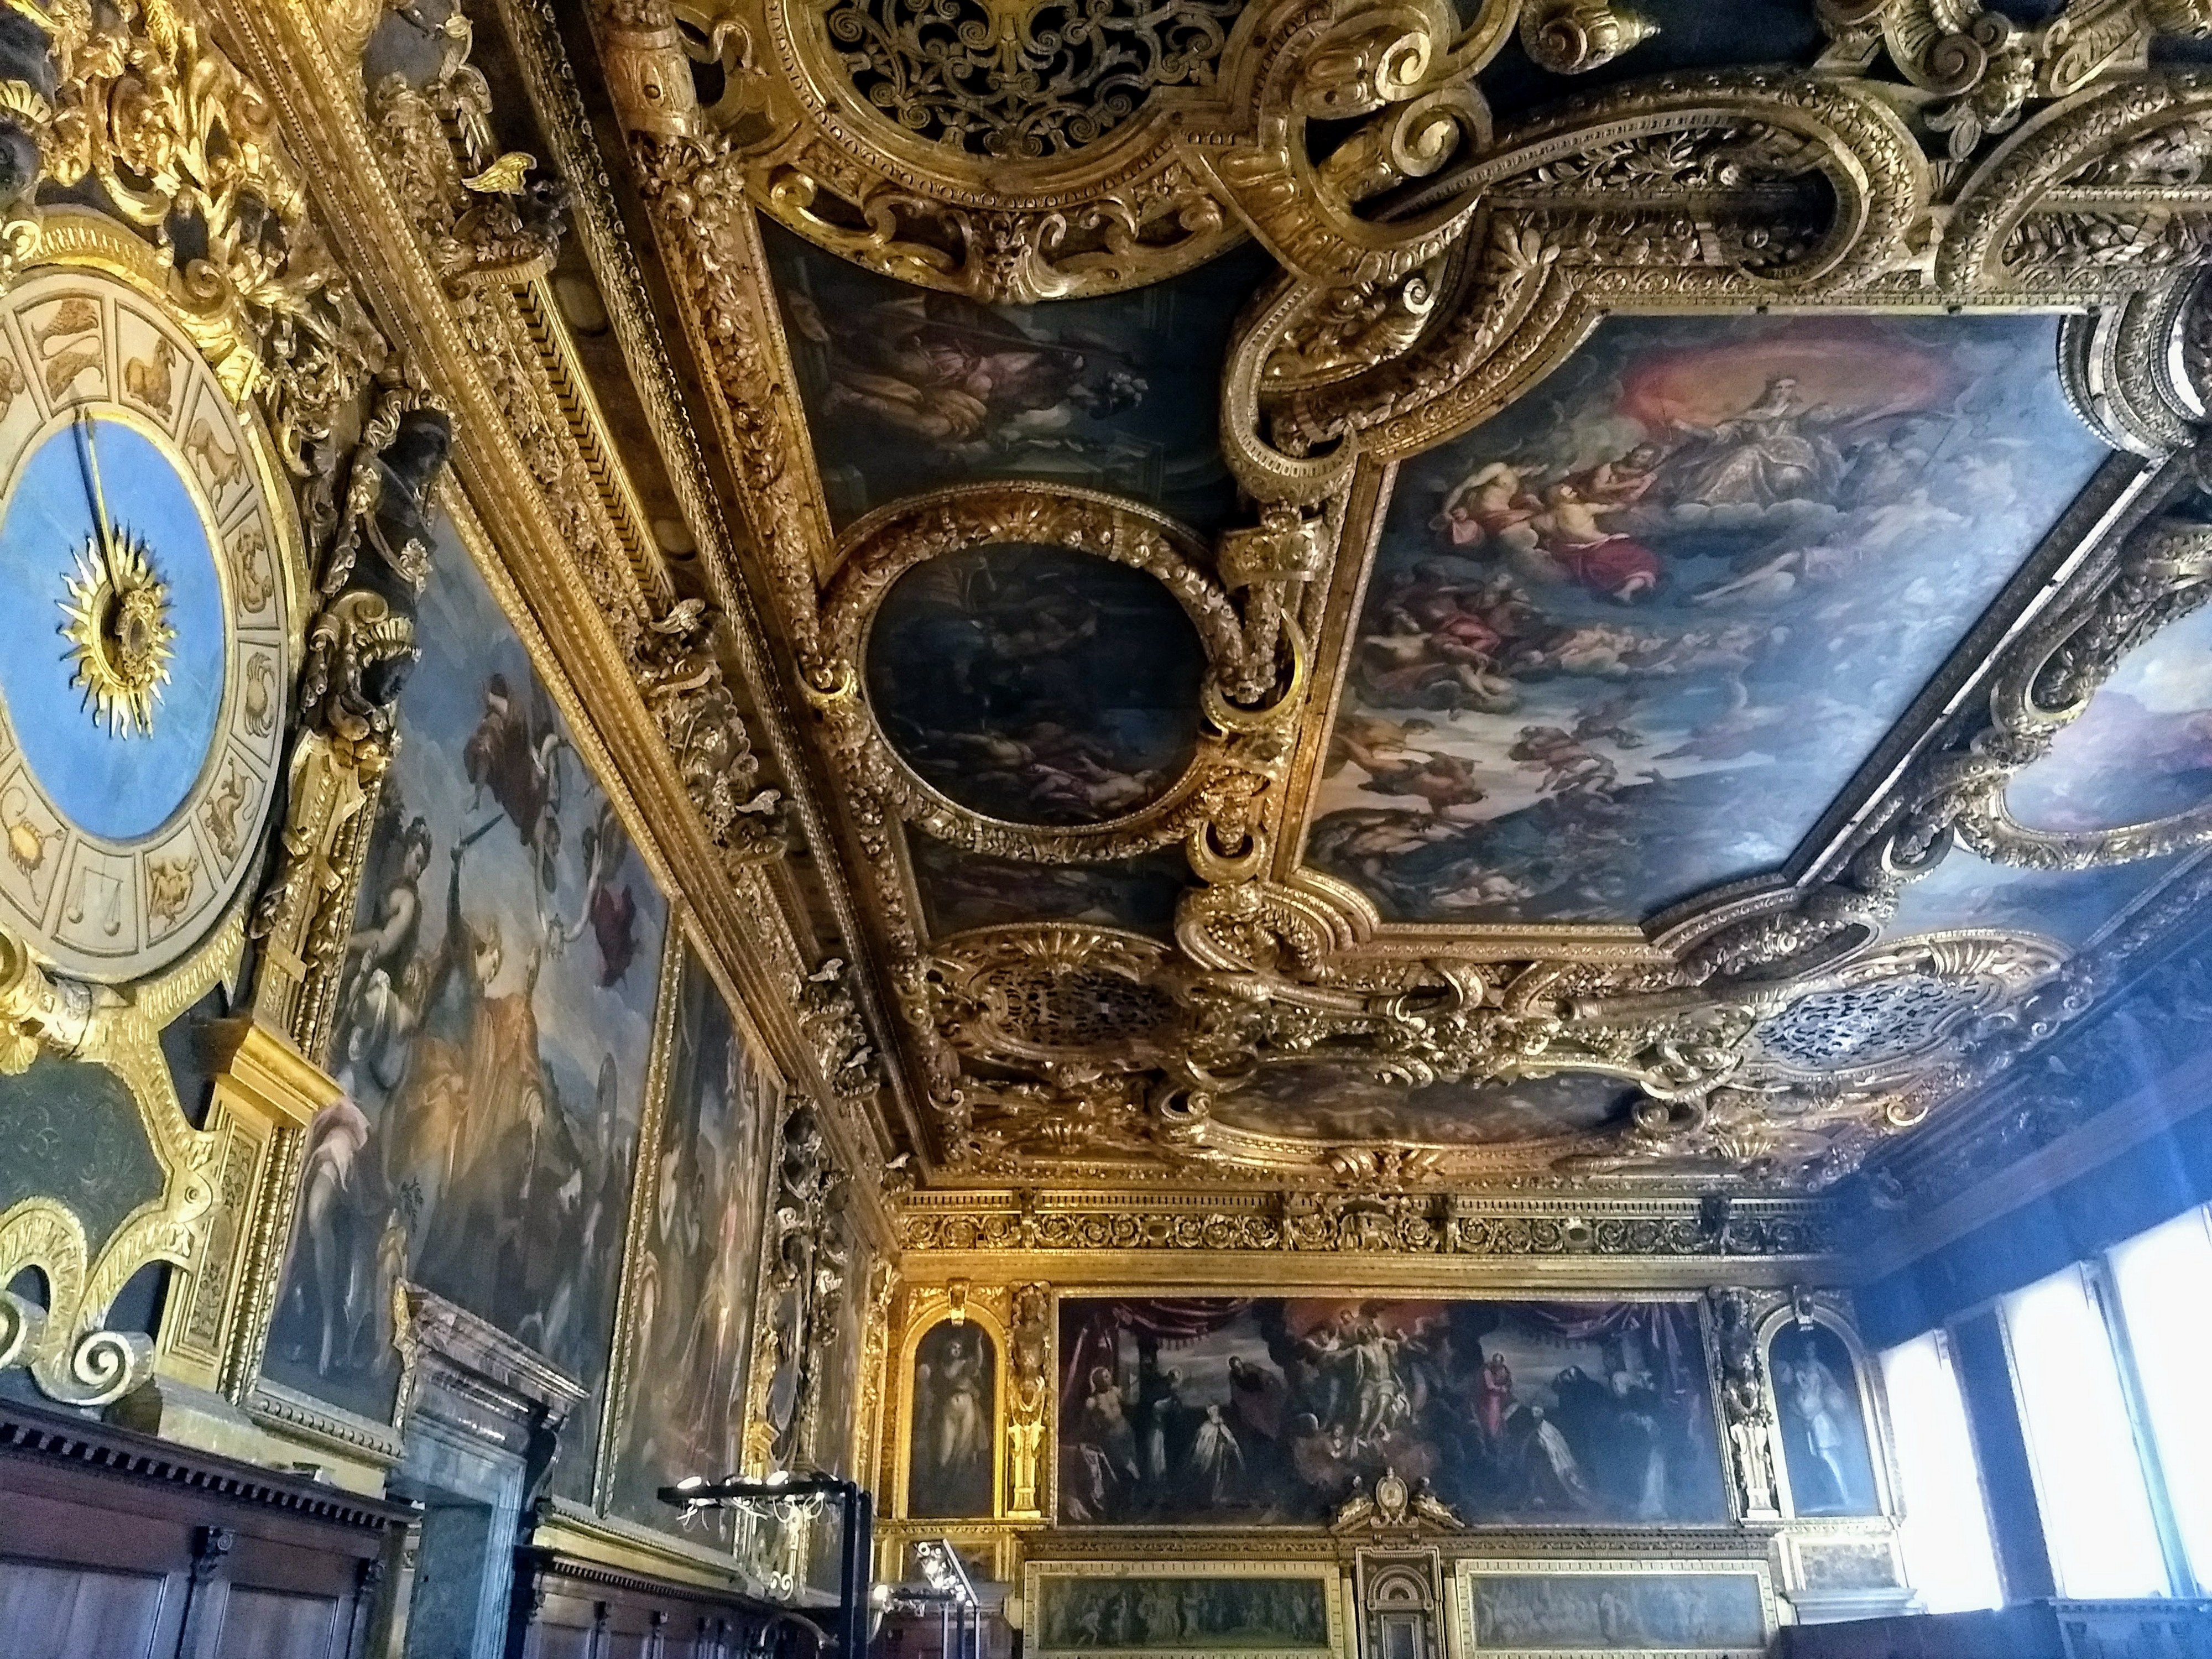 Masterpieces on walls and ceilings in a chember